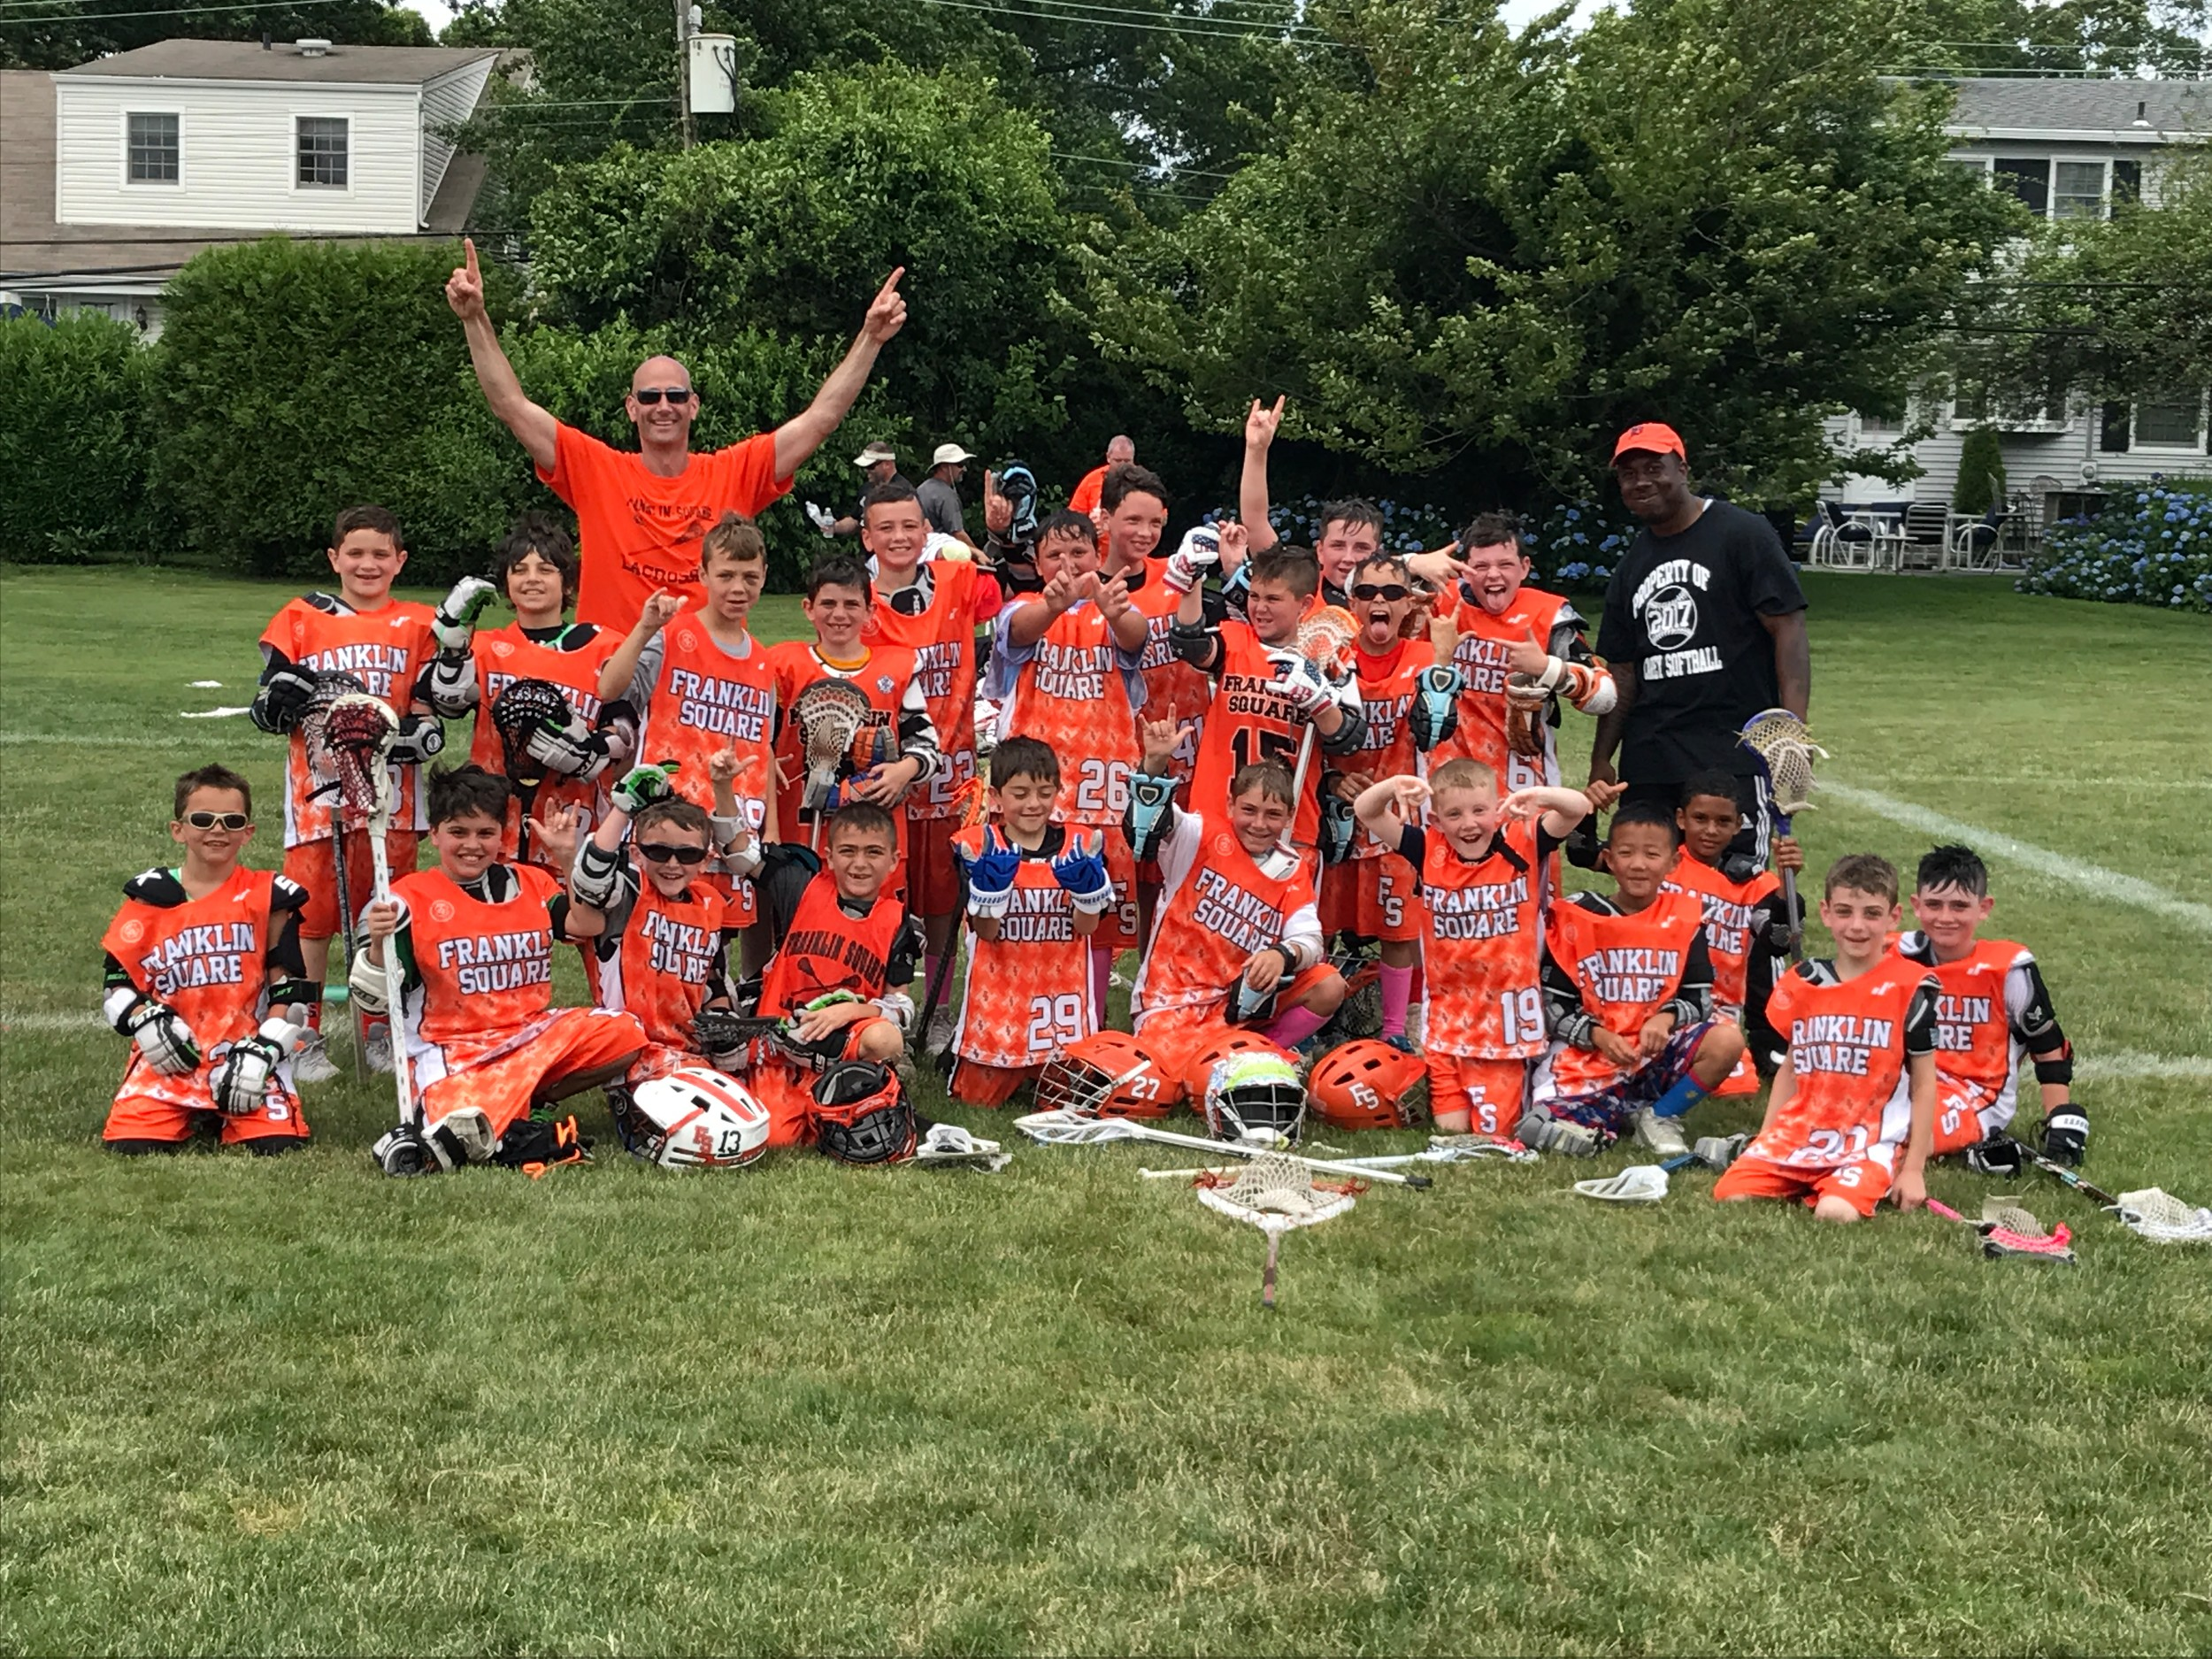 Franklin Square's boys' lacrosse team emerged victorious at the 2017 Long Island LAX Pride Fest in Garden City on July 1.